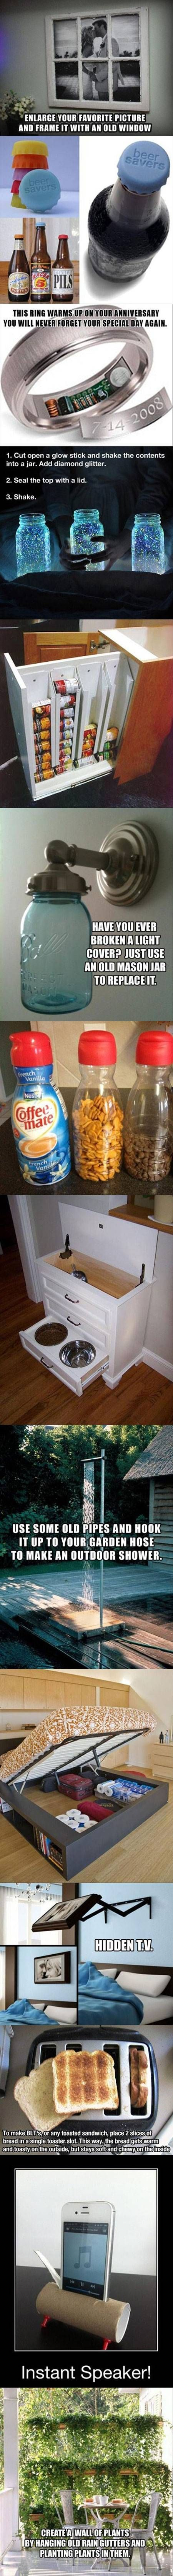 14 Cool and Creative Home Ideas for Geeks - TechEBlog